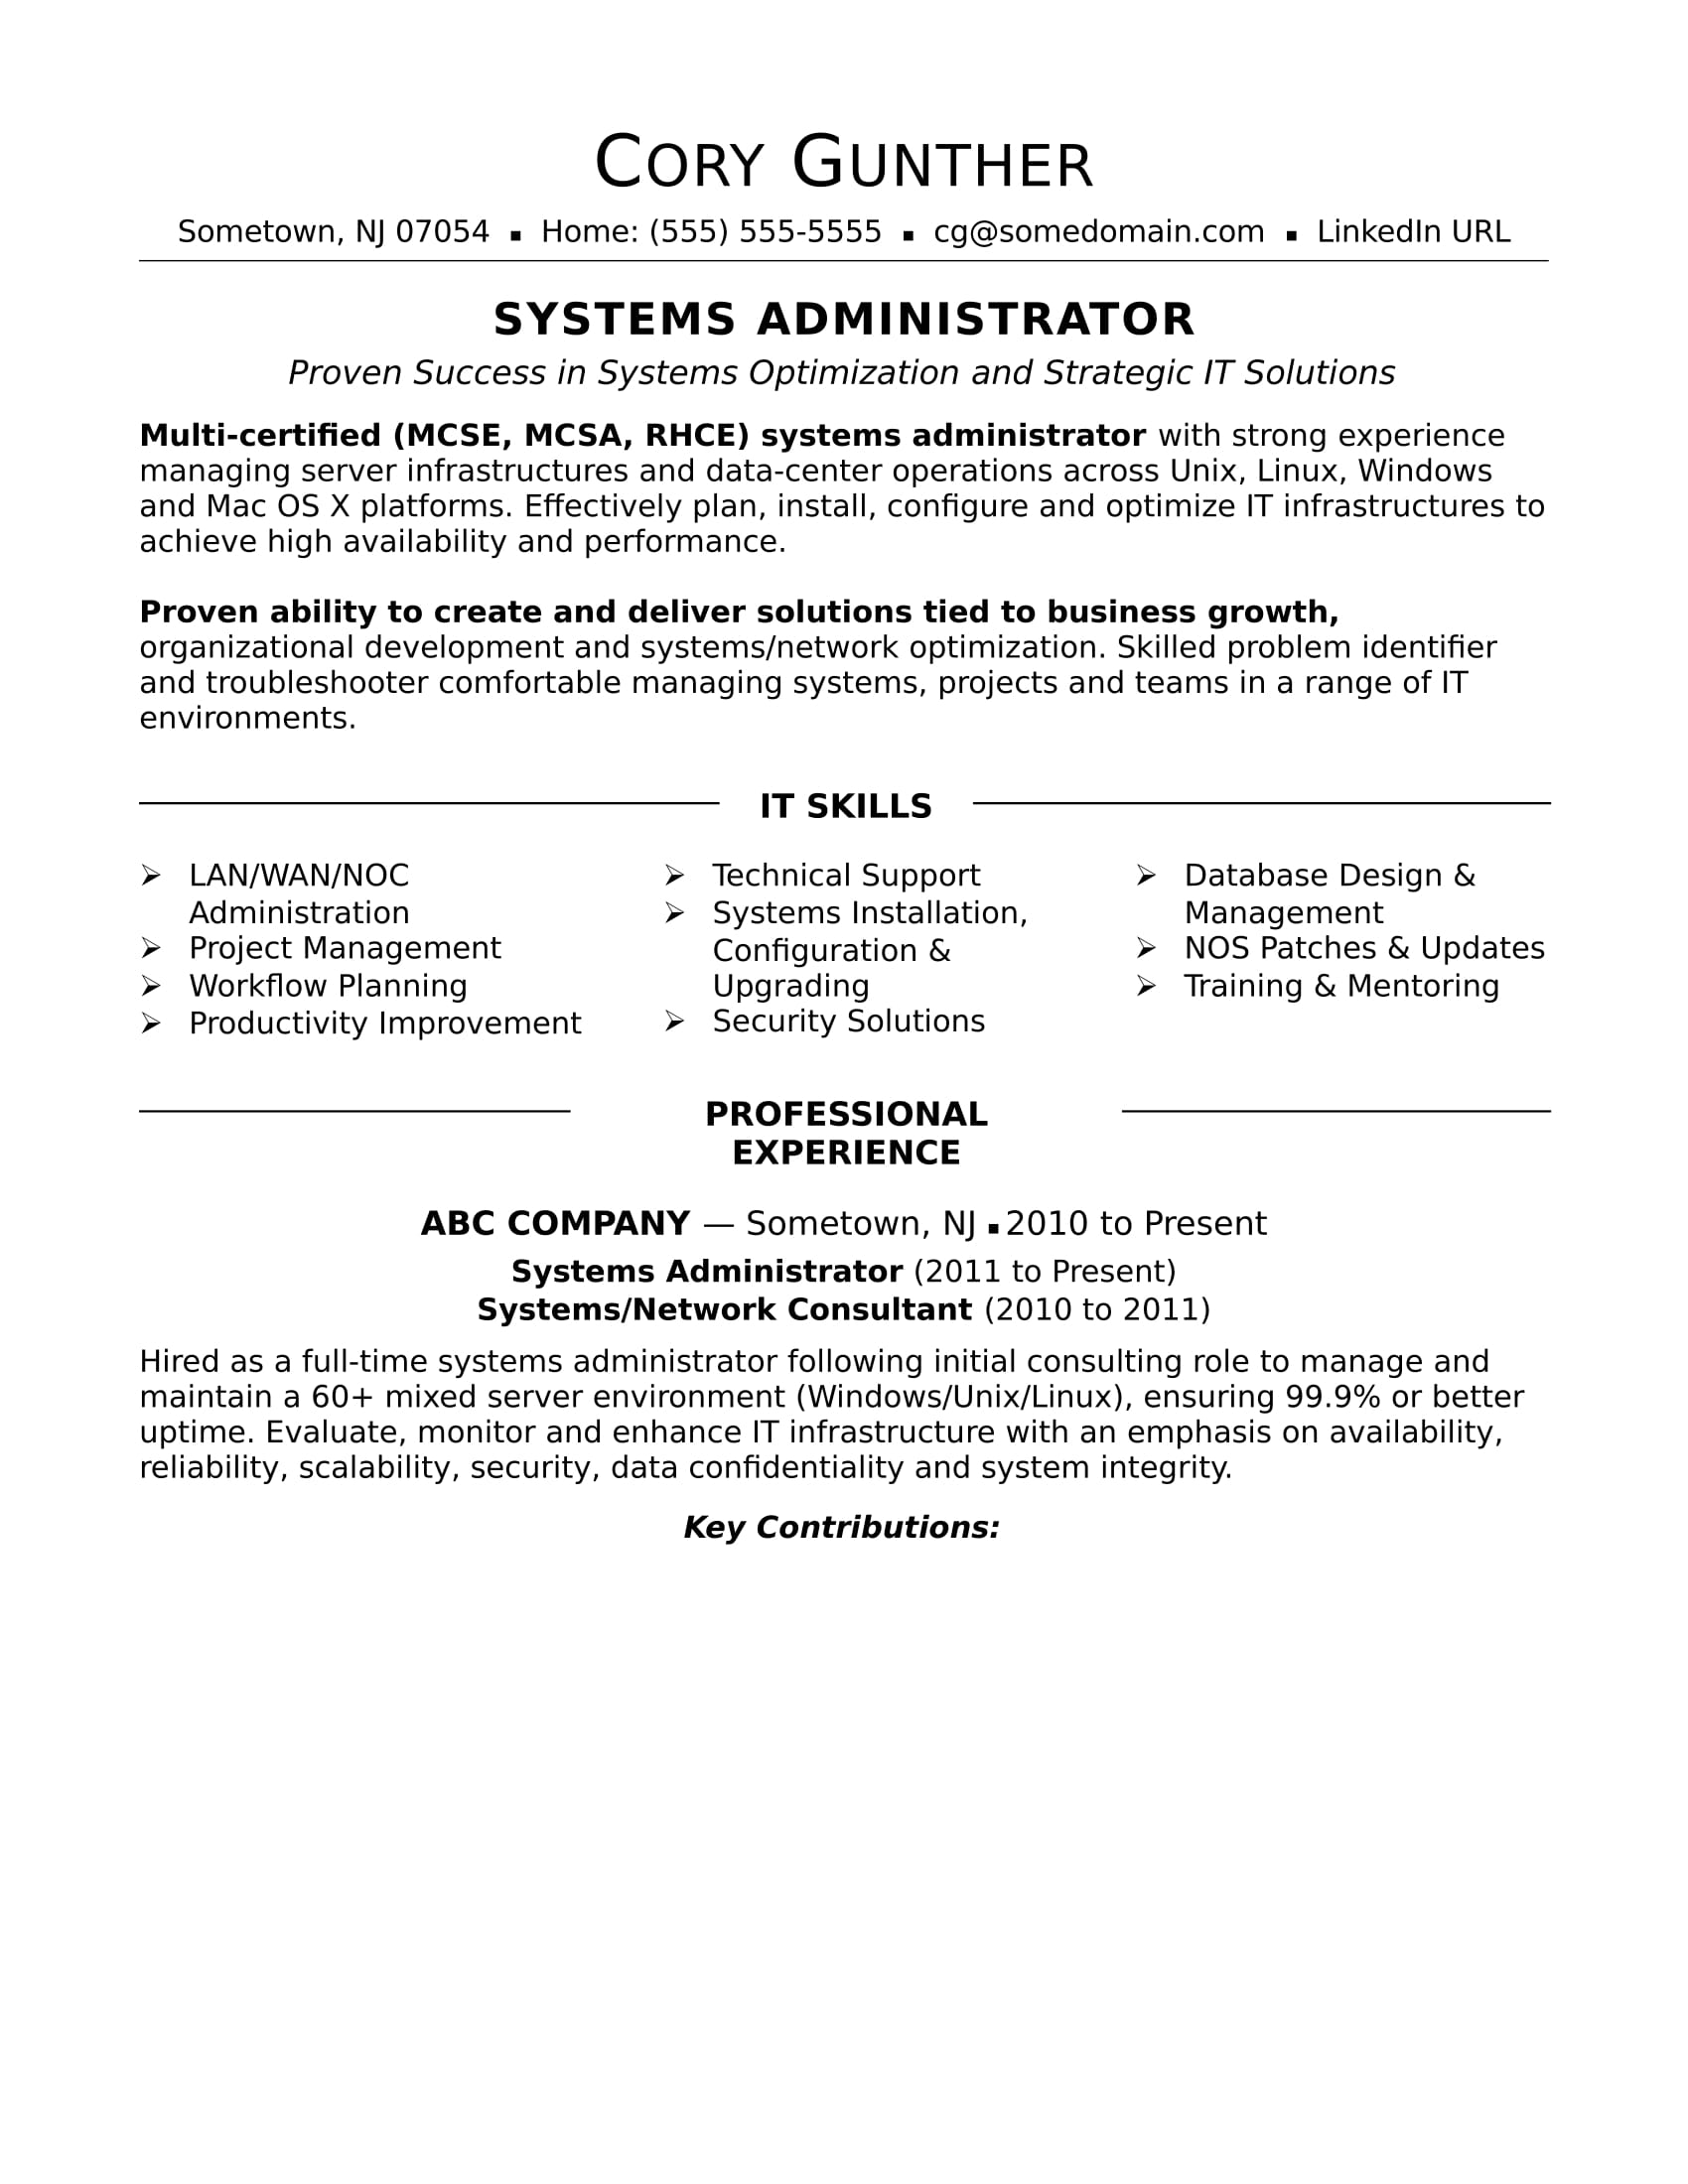 Sample Resume For An Experienced Systems Administrator  Business Skills Resume